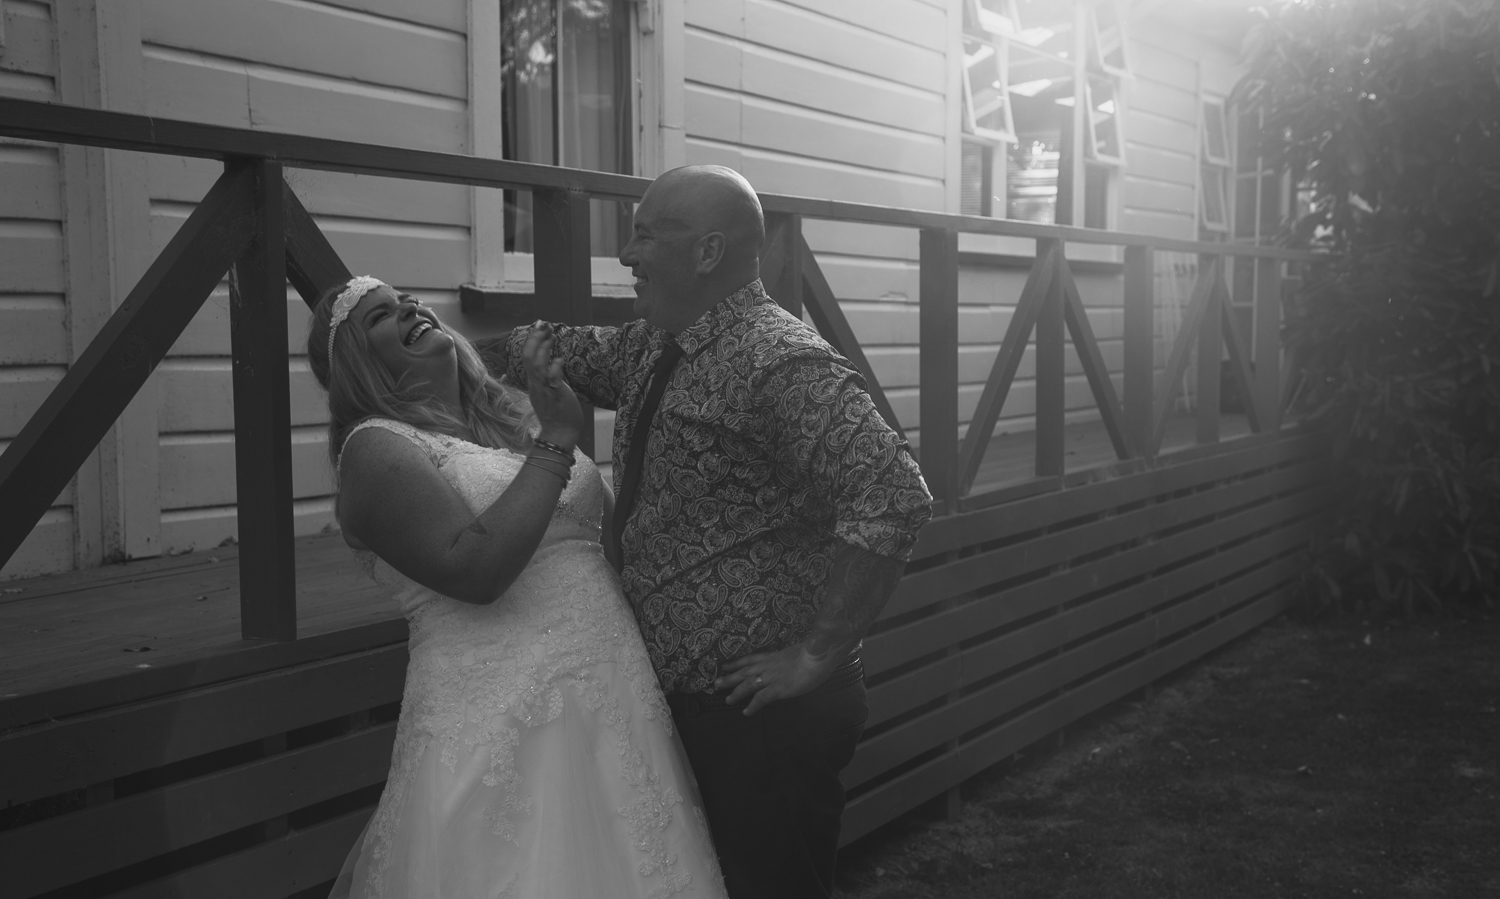 wedding-photography-bride-and-groom-laughing-together-black-and-white.jpg